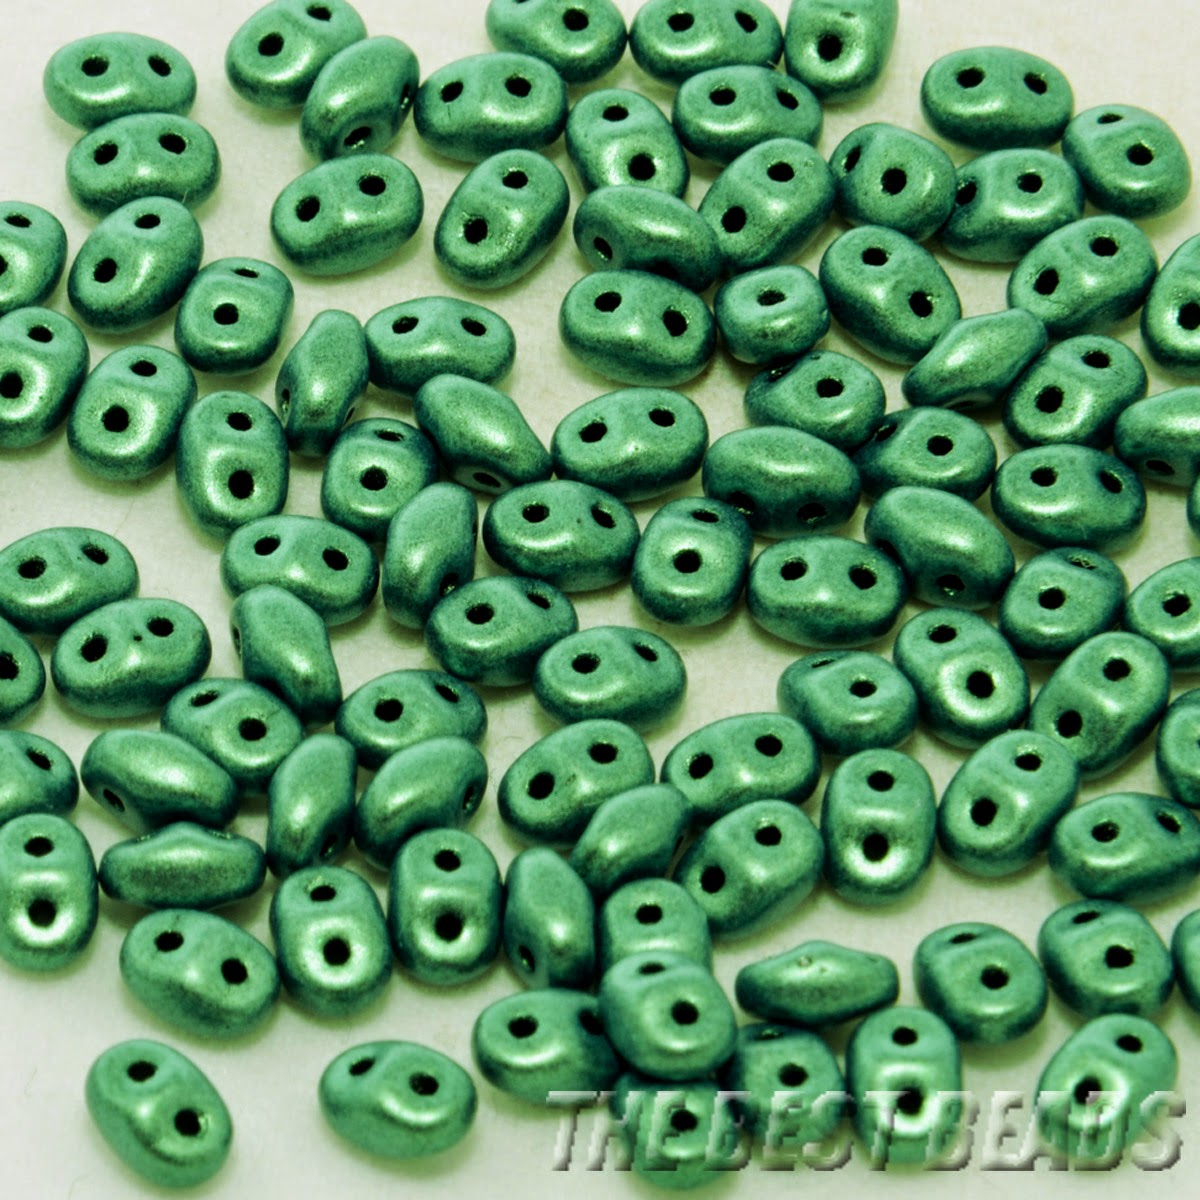 https://www.etsy.com/listing/201711109/25g-300pcs-green-metallic-suede-super